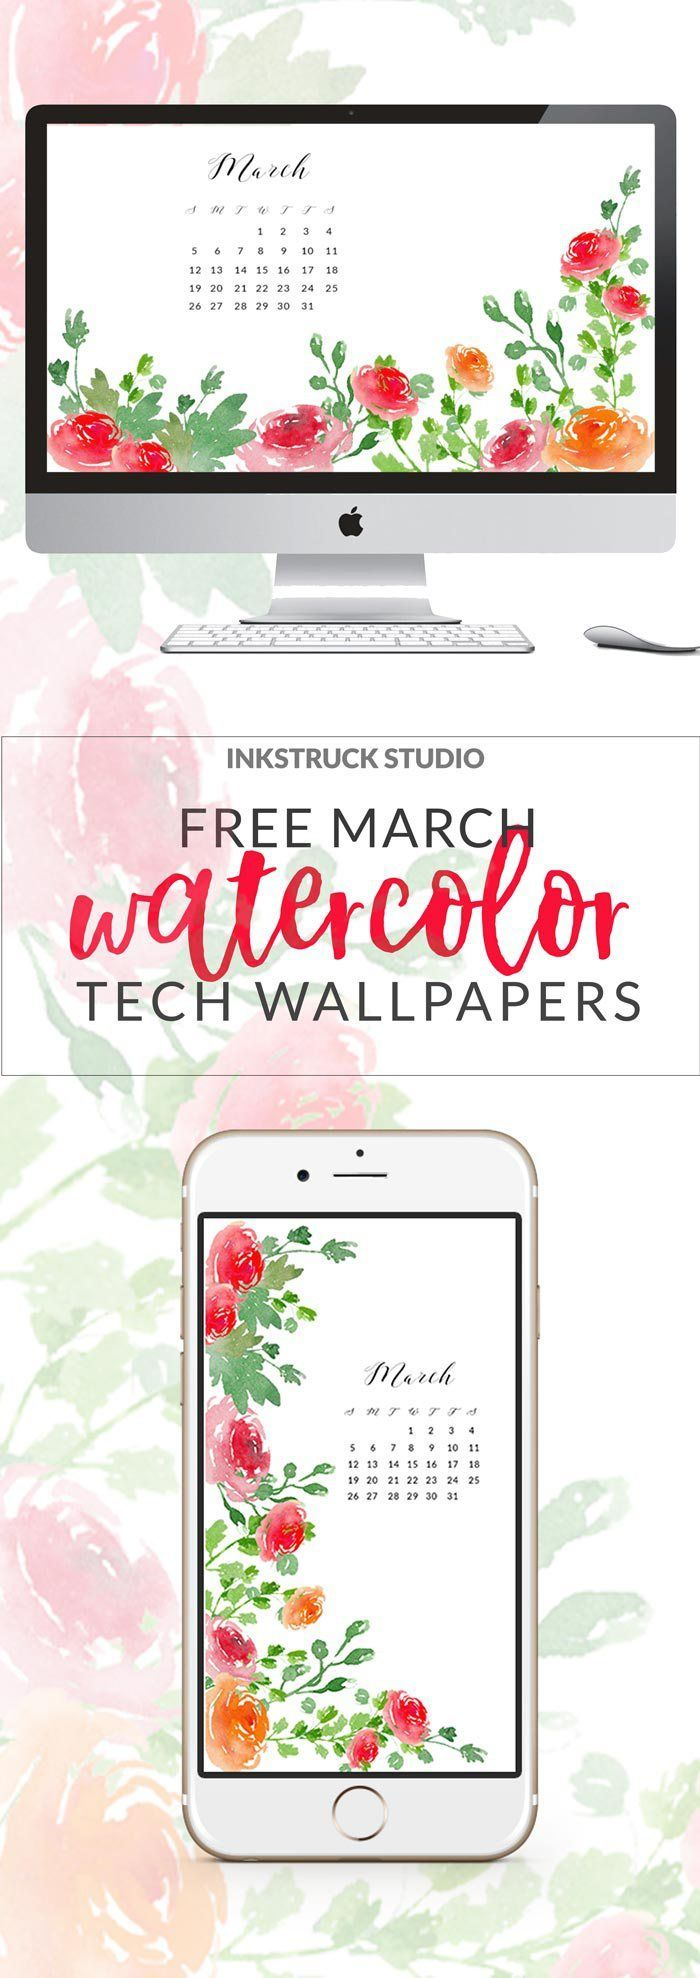 Time to change your tech wallpapers for March! And to make it pretty I have these March watercolor wallpapers for you on the blog. Click to download | http://www.inkstruck.com